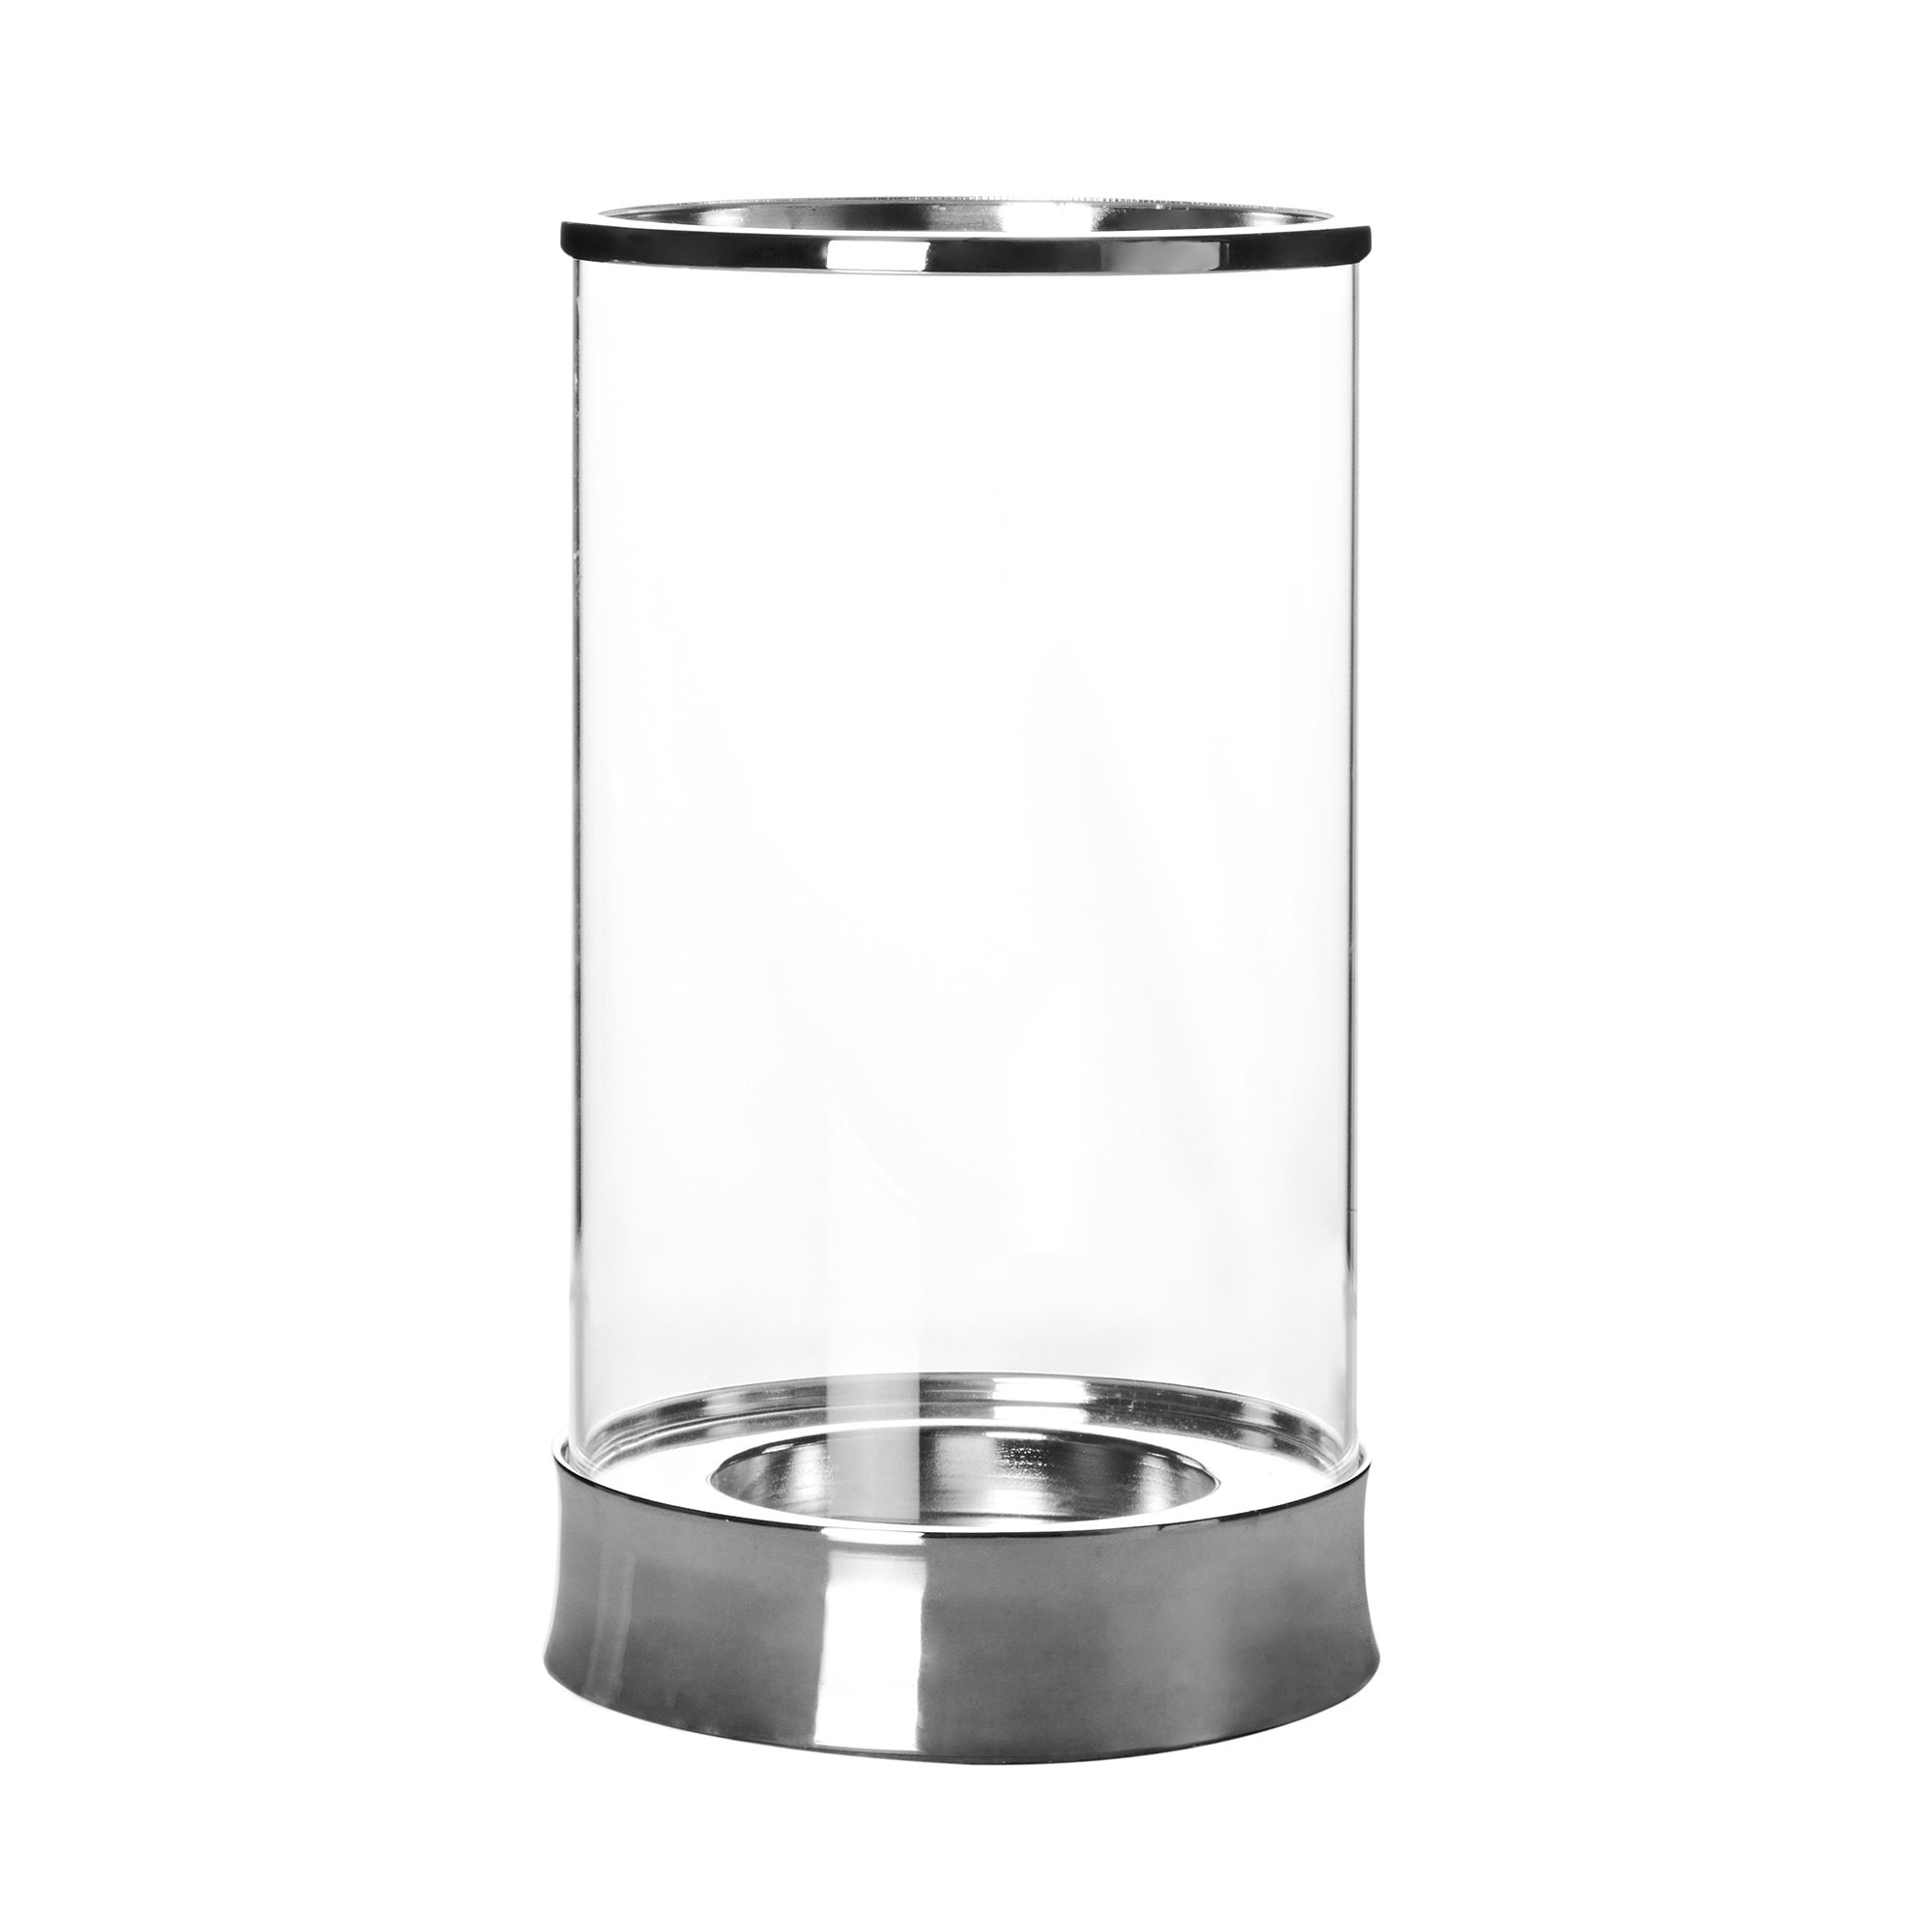 Photo of Hotel metal and glass hurricane vase chrome